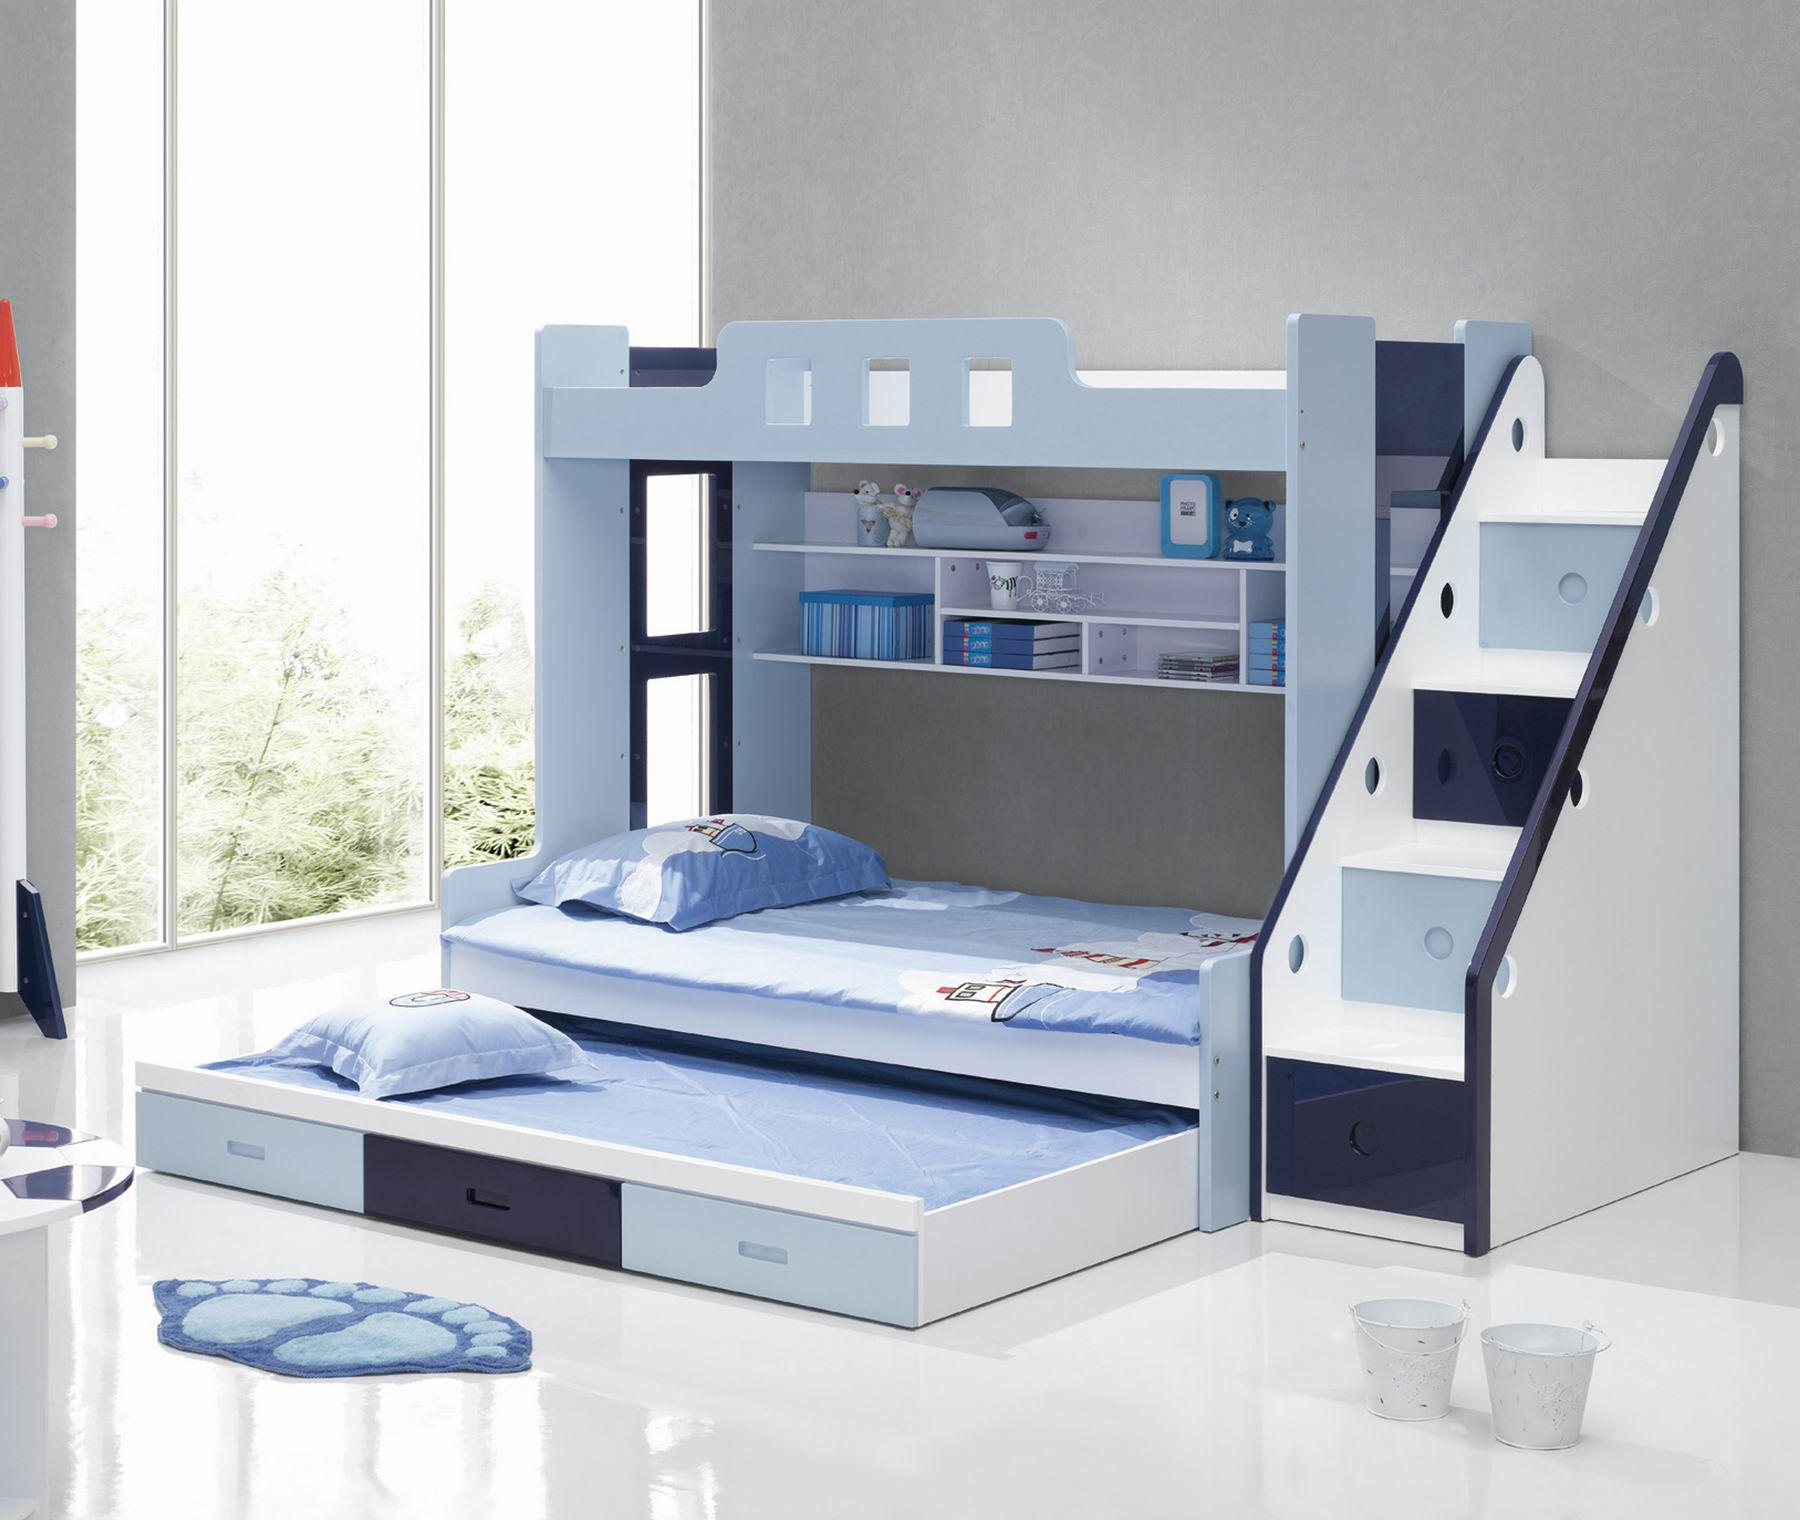 Incredible Style and Modern Bunk Beds for Kids Bedroom: Loft Bed With Trundle | Full Over Full Size Bunk Beds | Modern Bunk Beds